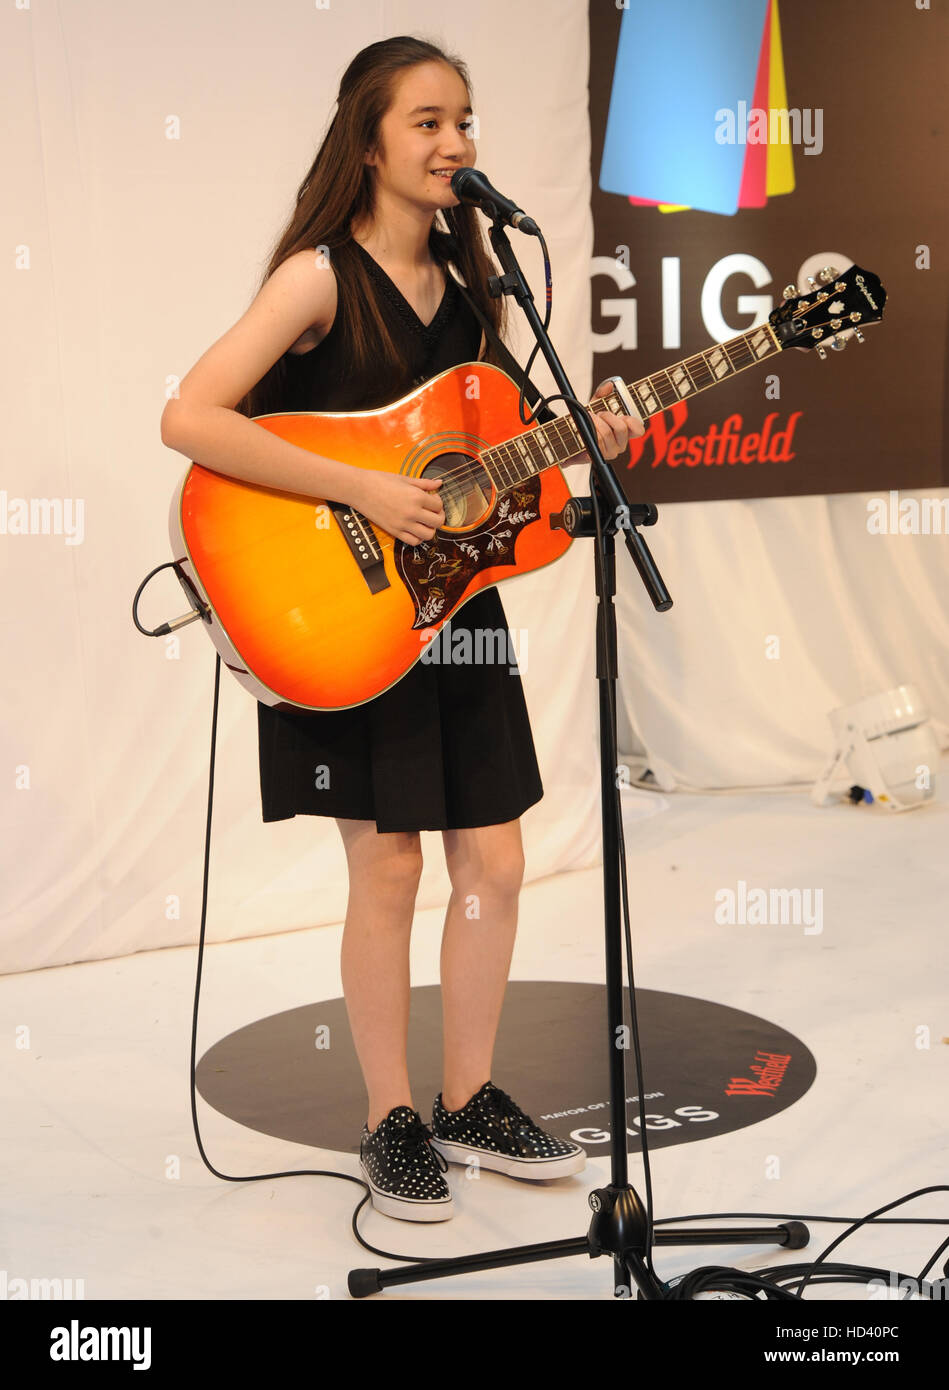 Westfield Stratford Gigs grand final  Featuring: Clarissa Mae Where: London, United Kingdom When: 04 Sep 2016 Stock Photo